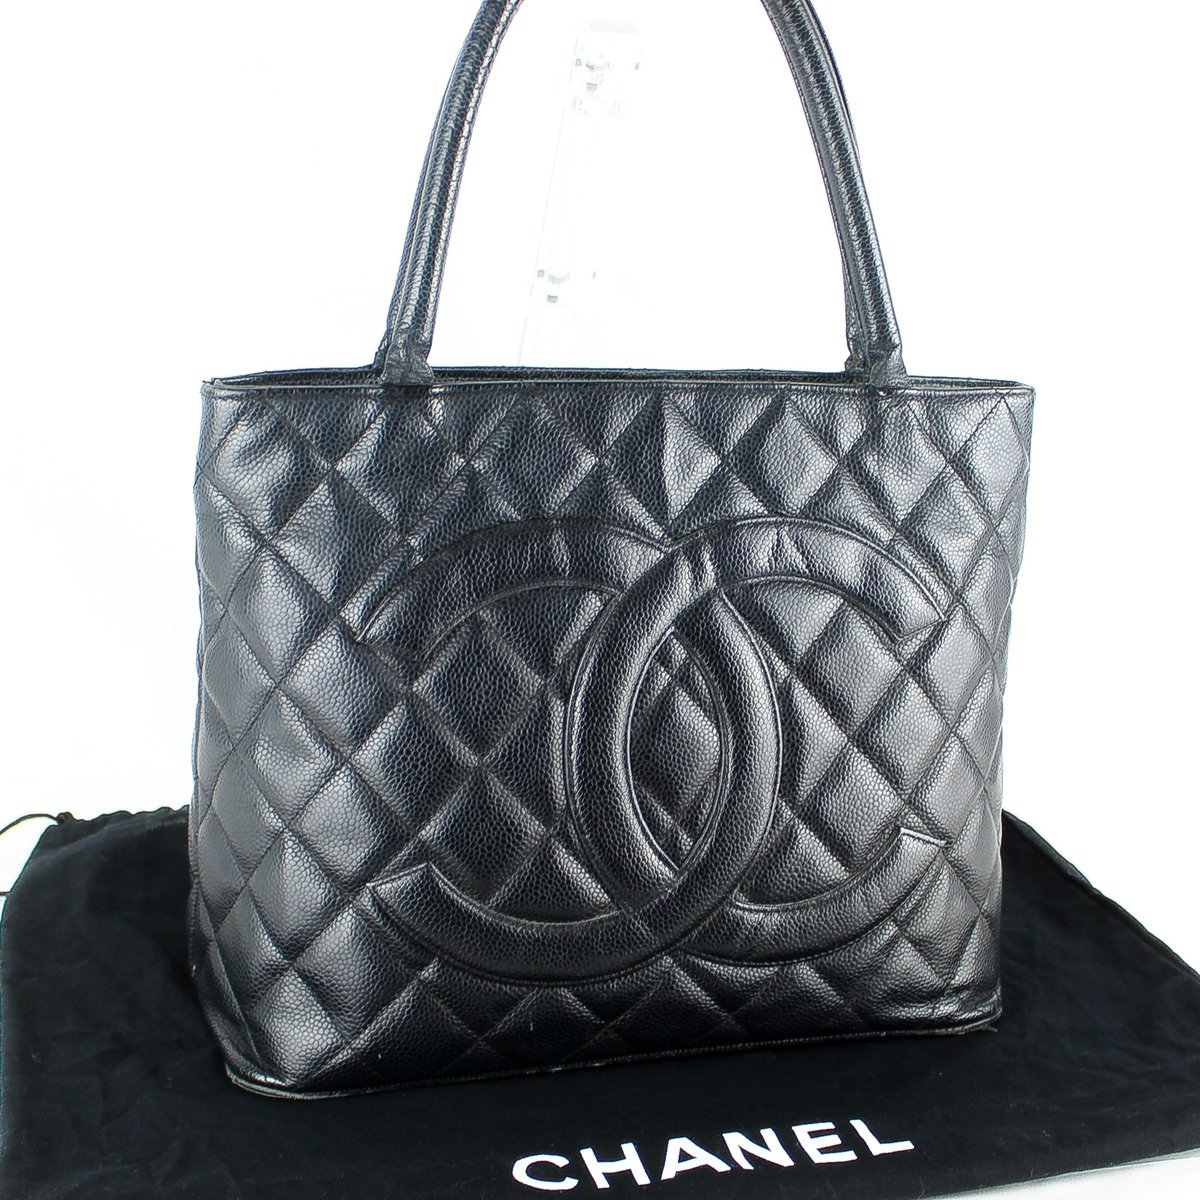 I love Matelasse💖💖💖 CHANEL Medallion Matelasse Caviar Skin Leather Tote Bag  Authentic verified. Free shipping worldwide.  Click on @brand_tcr for store link. Please search by this SKU:  e020120020  #chanel #followme #follow  Follow me😆💕 https://t.co/YBxo4vVBOF